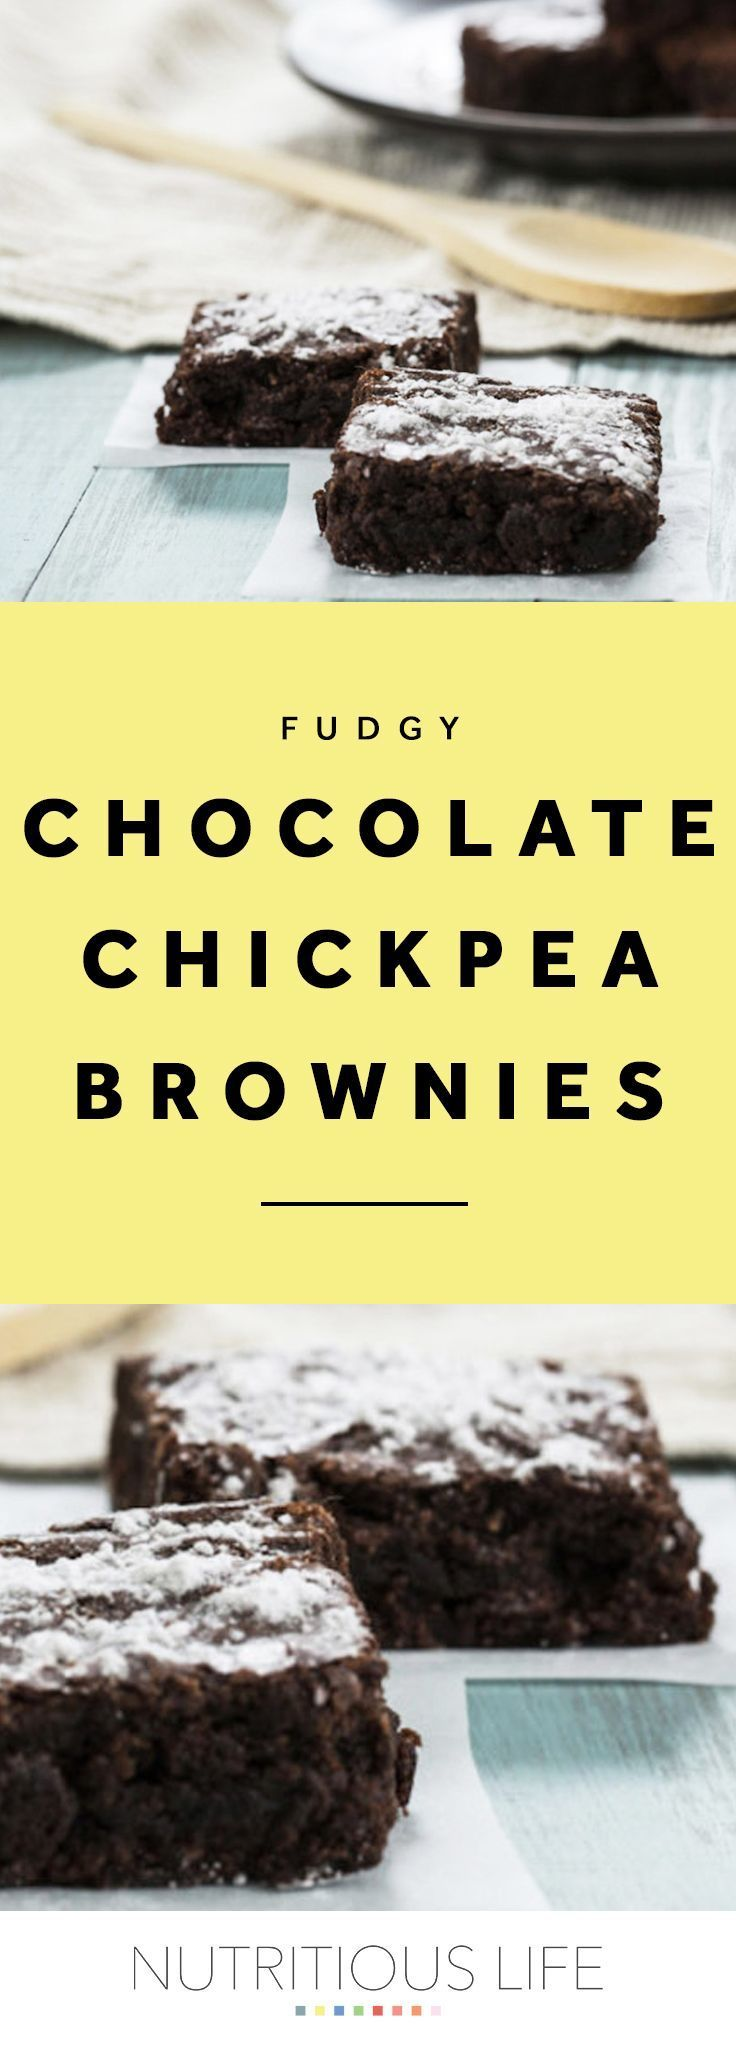 Fudgy Chocolate Chickpea Brownies Recipe in 2020